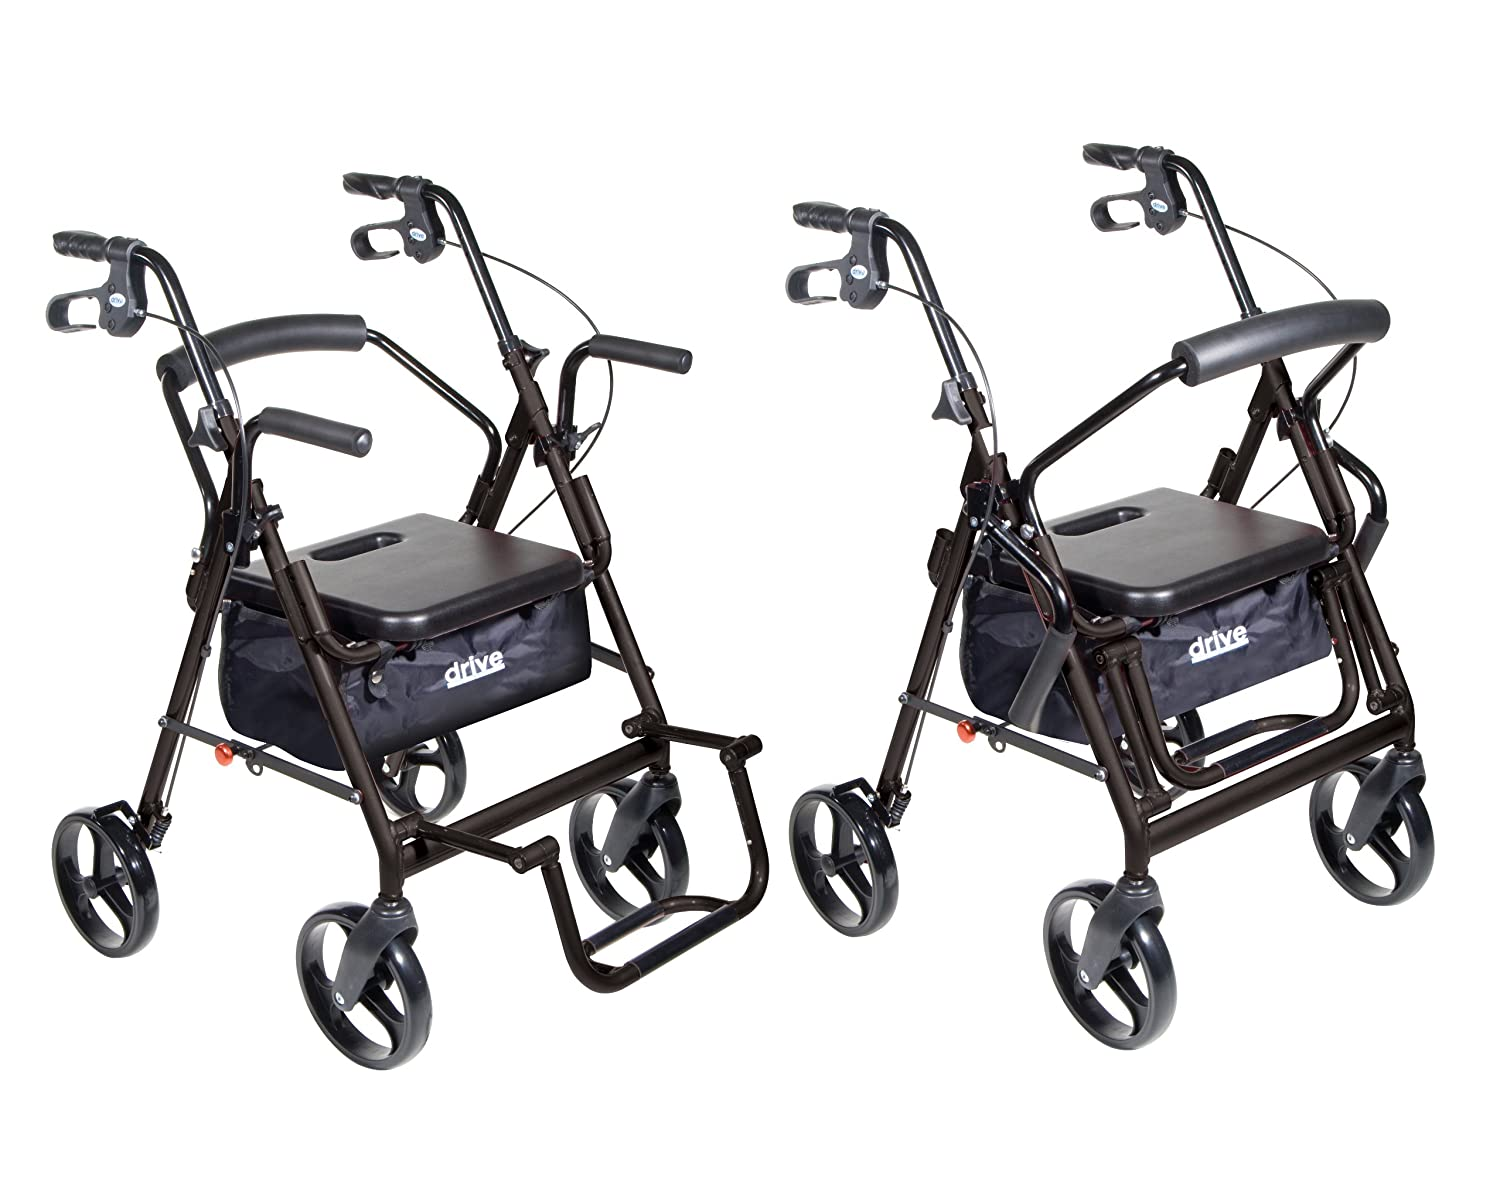 Transport chair amazon - Amazon Com Drive Medical Duet Dual Function Transport Wheelchair Walker Rollator Black Health Personal Care